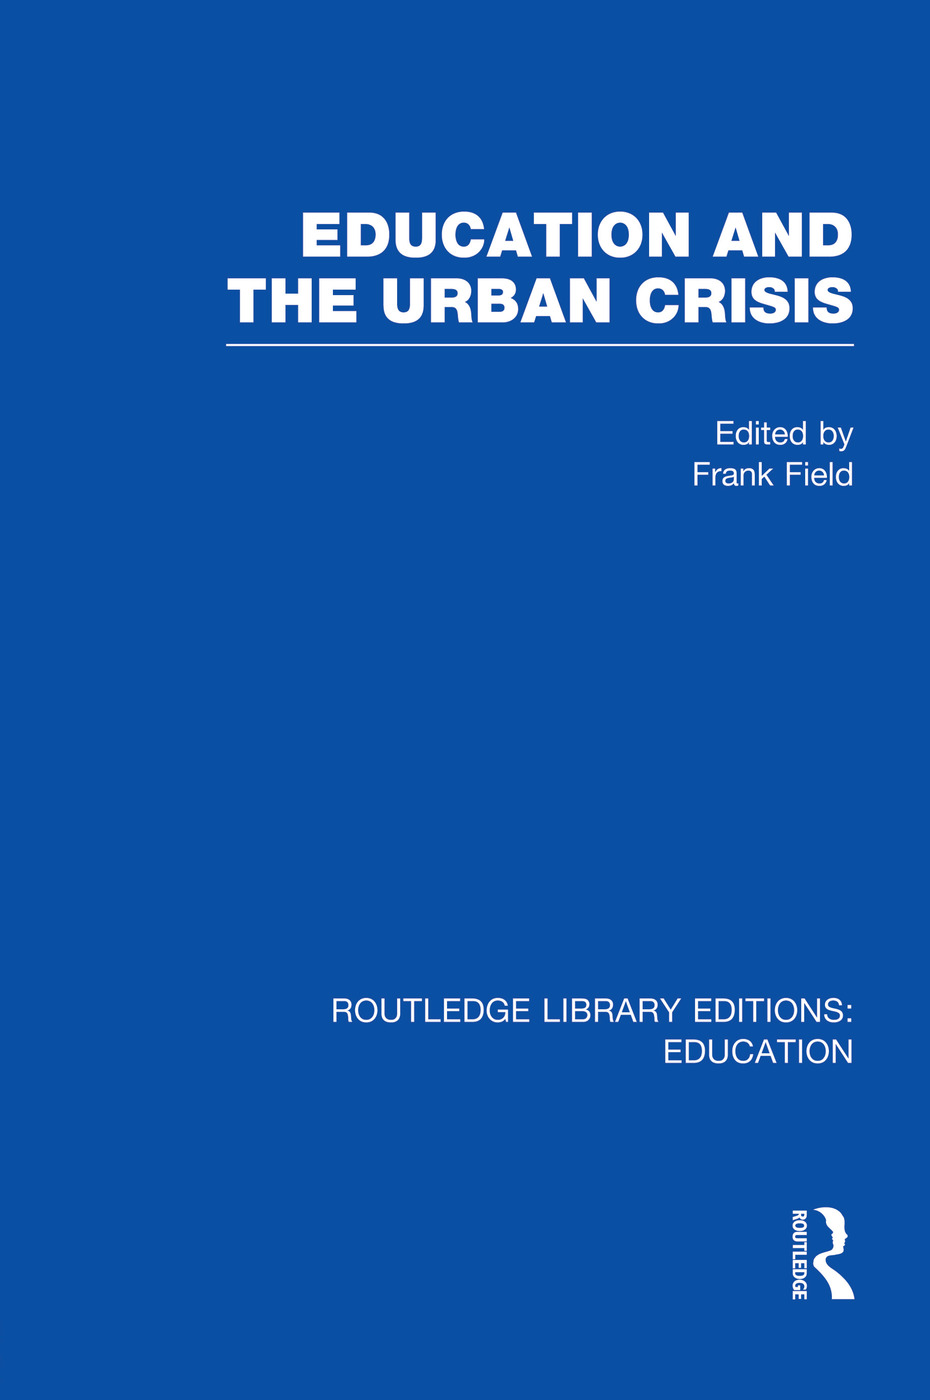 Education and the Urban Crisis